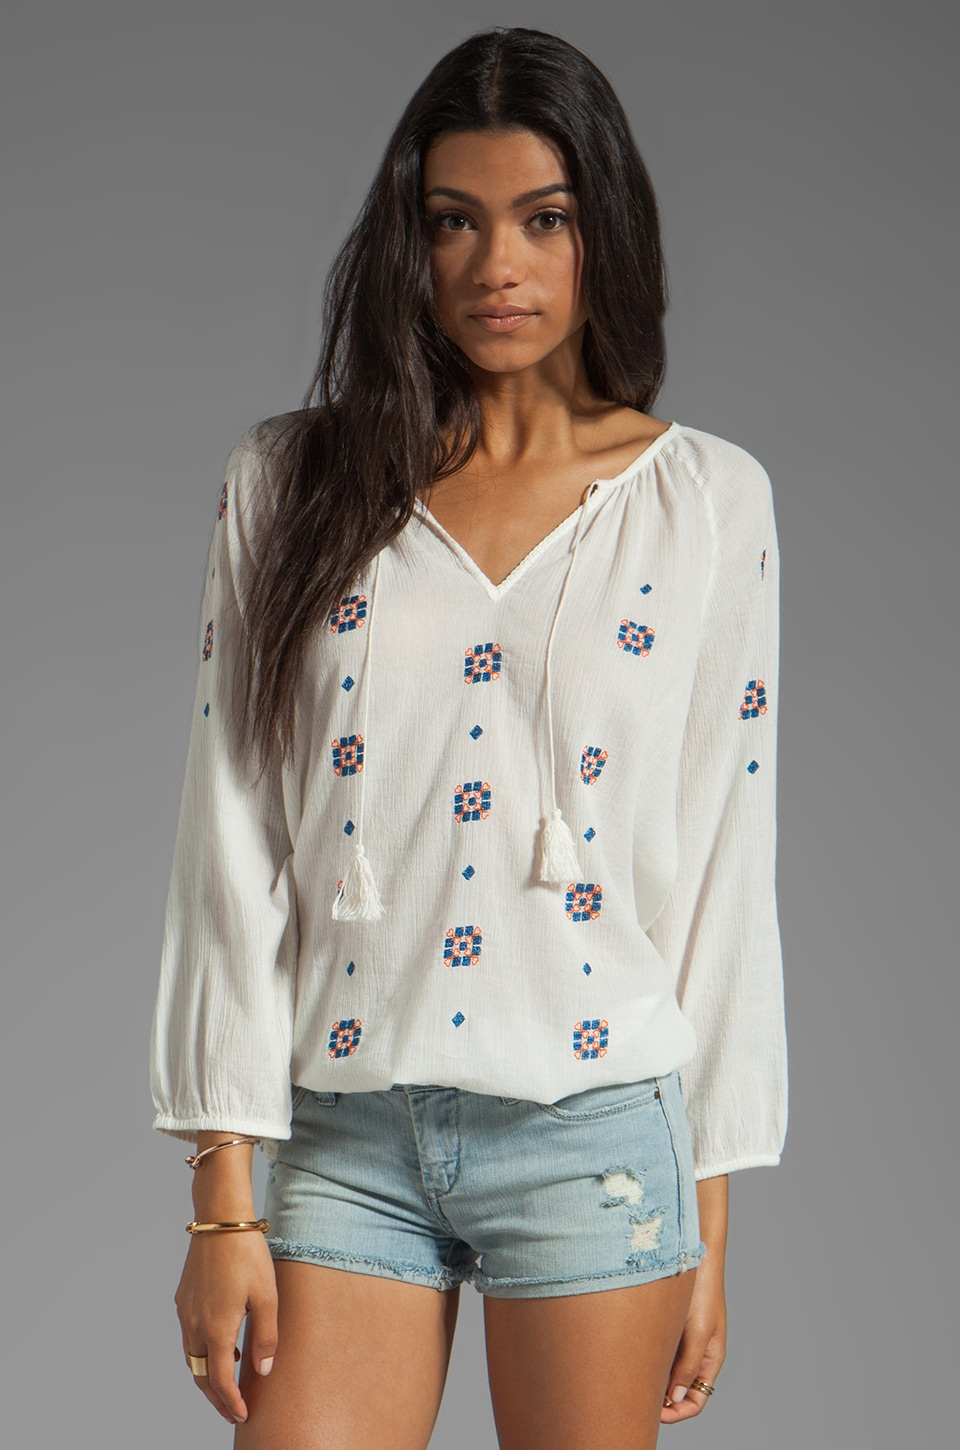 Joie Layann Embroidery Top in Porcelain